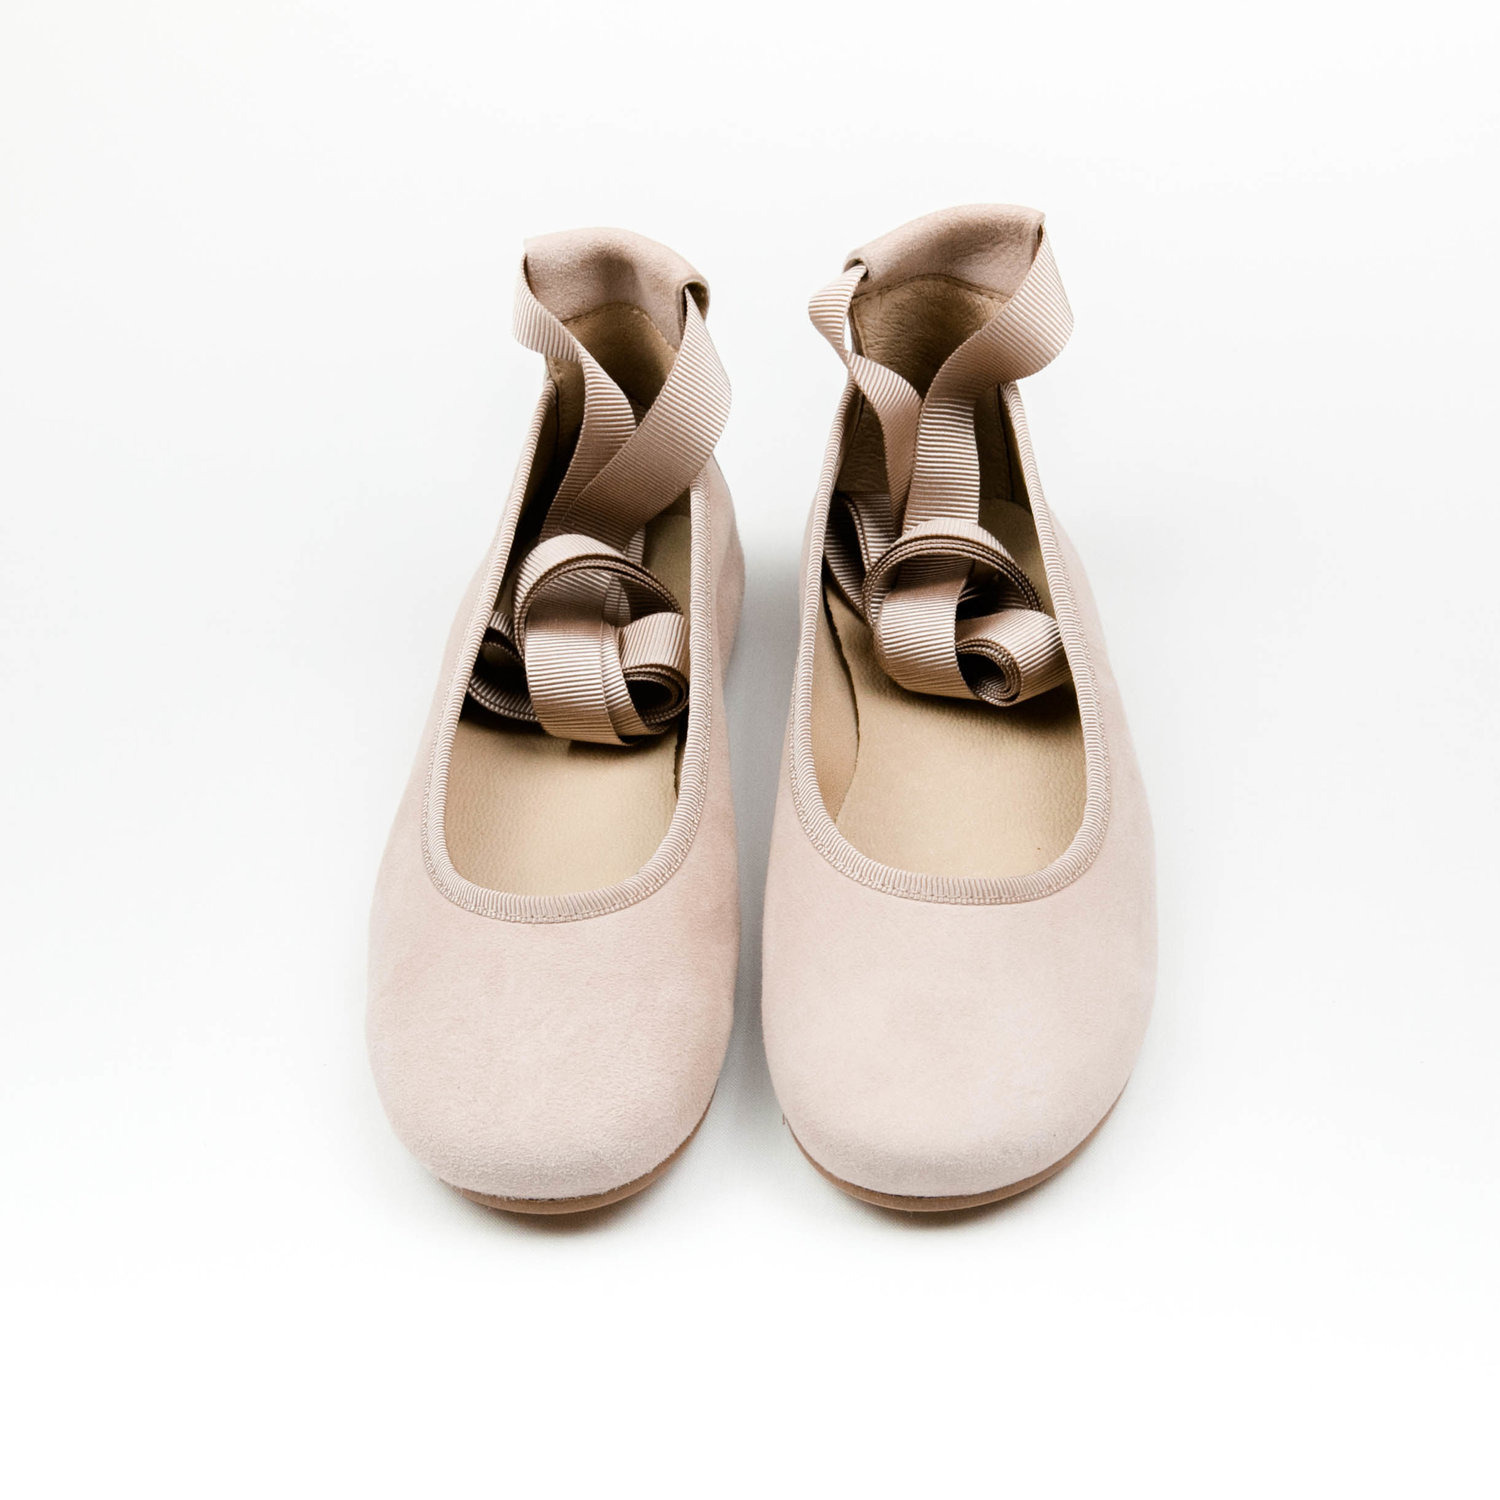 GIRL SHOES -